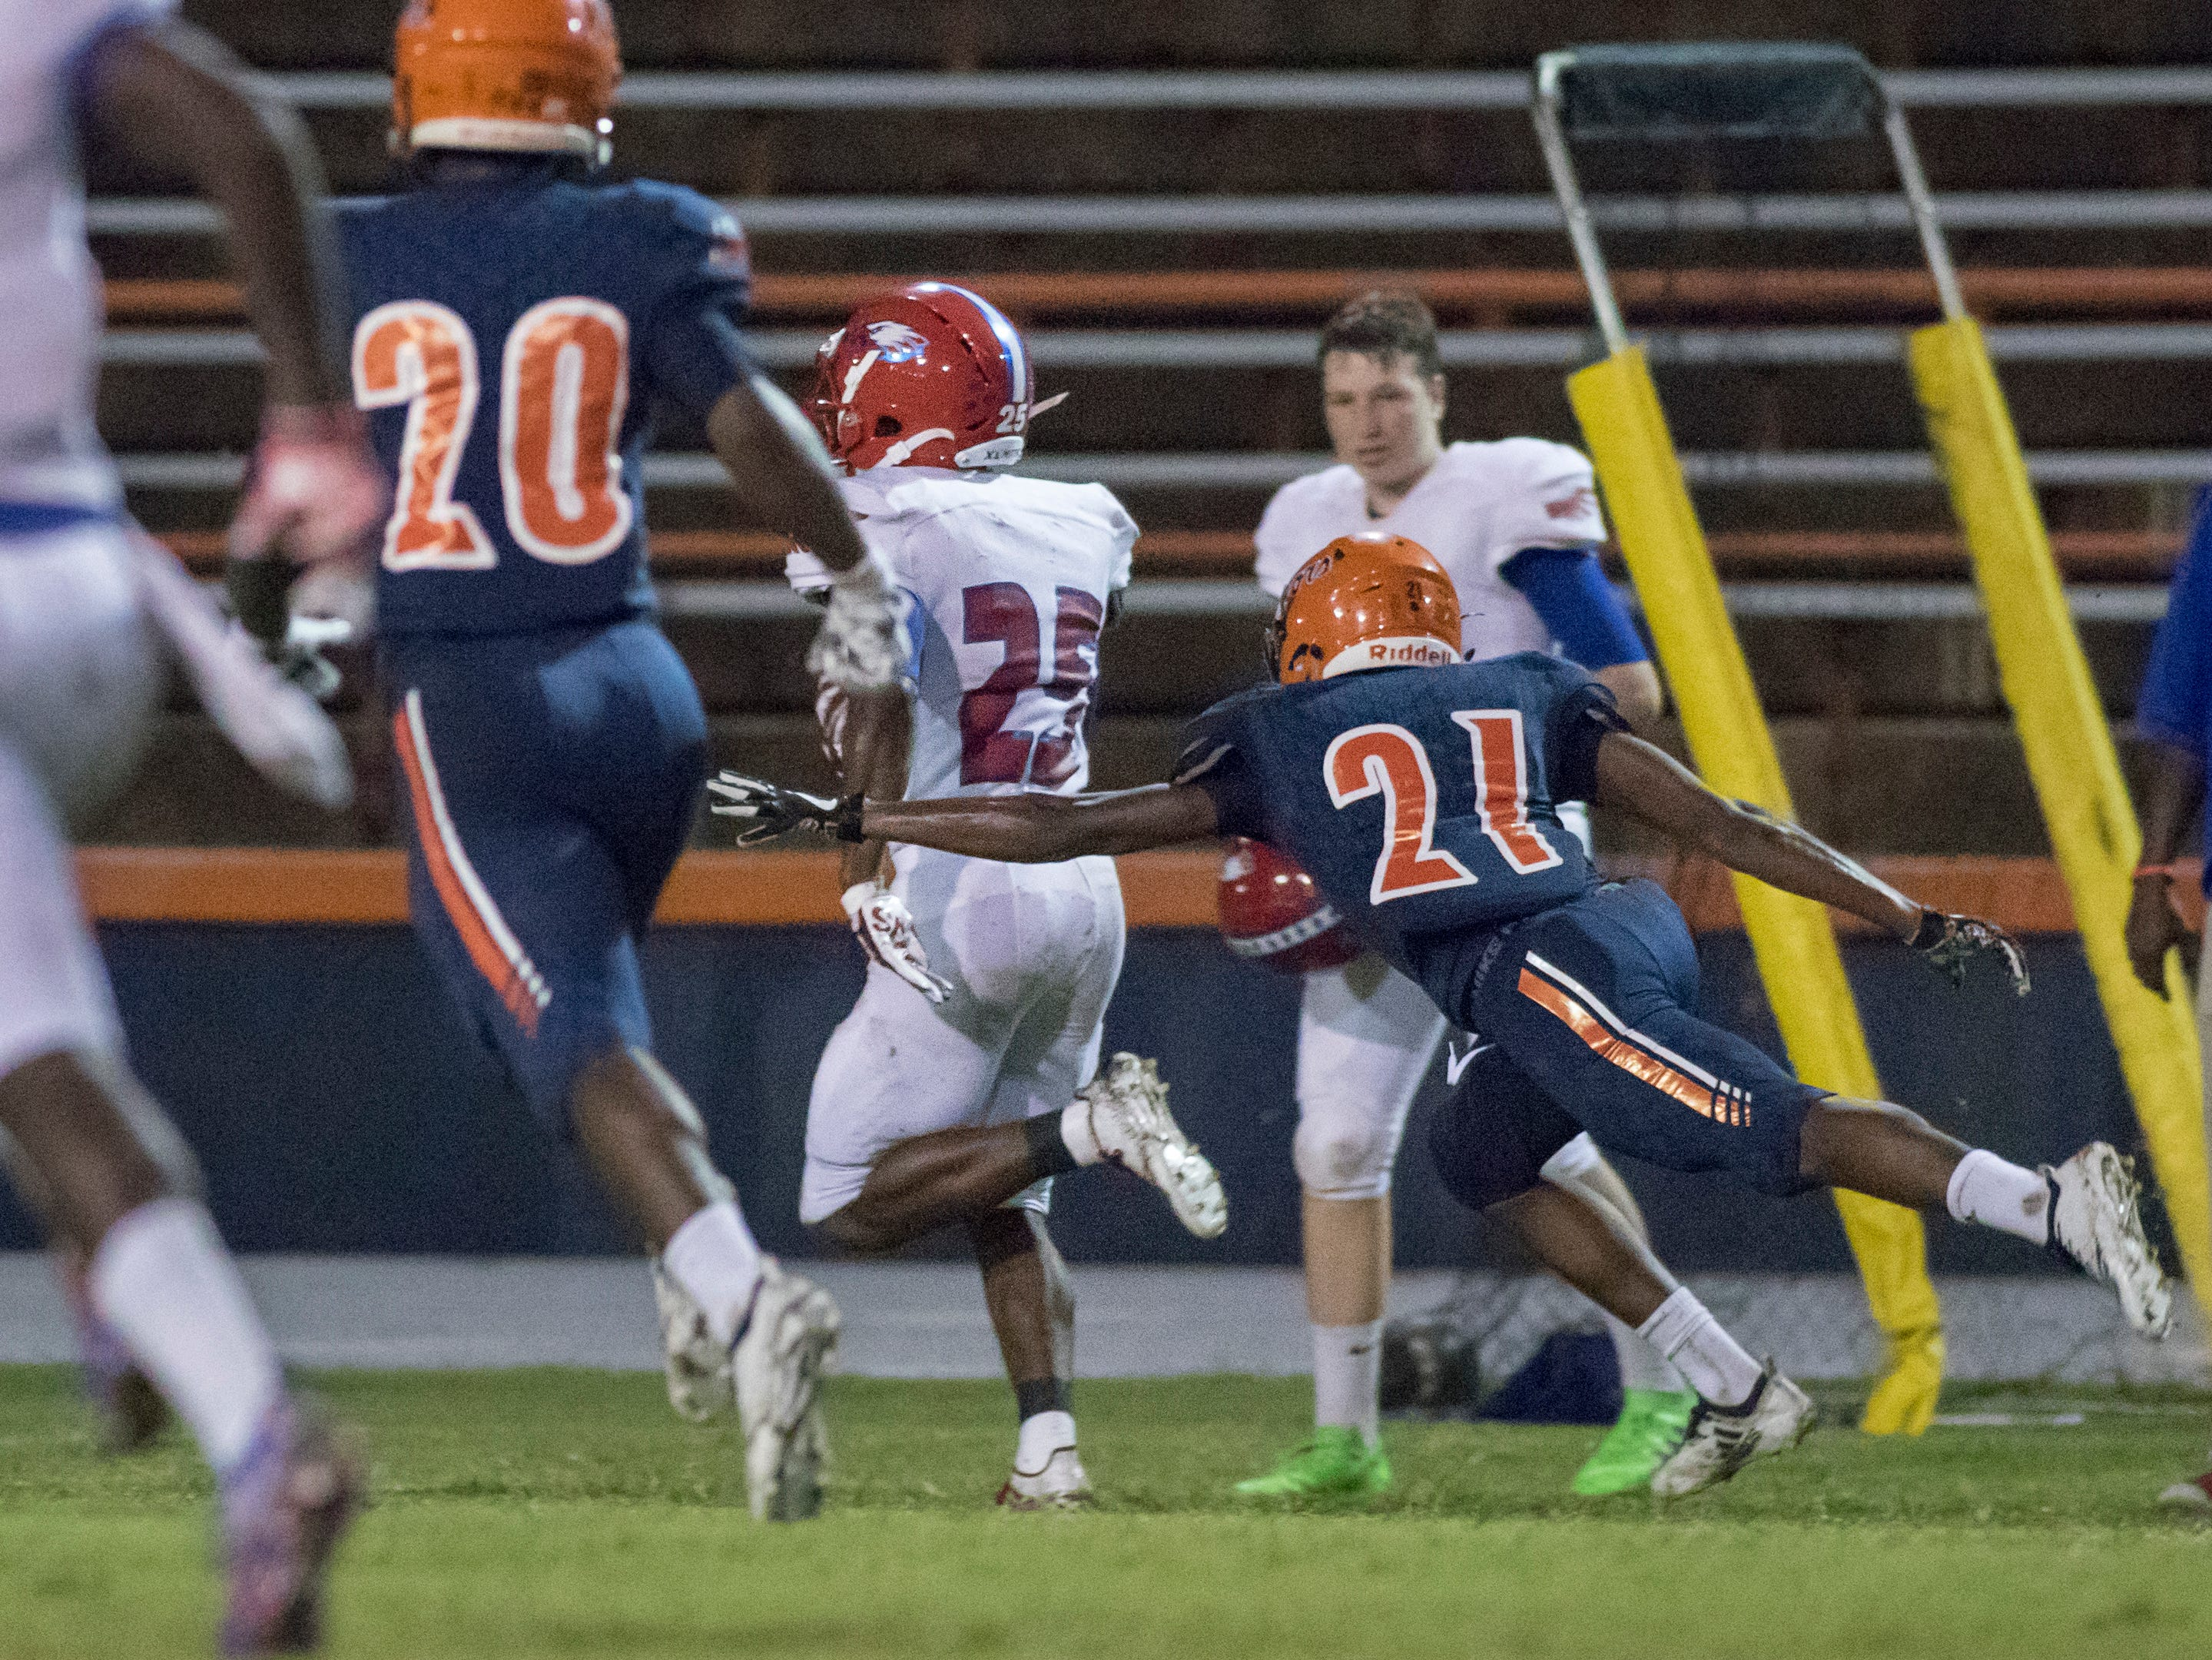 Anwar Lewis (25) races down the sideline on his way to a touchdown and a 7-7 tie during the Pine Forest vs Escambia football game at Escambia High School in Pensacola on Friday, September 28, 2018.